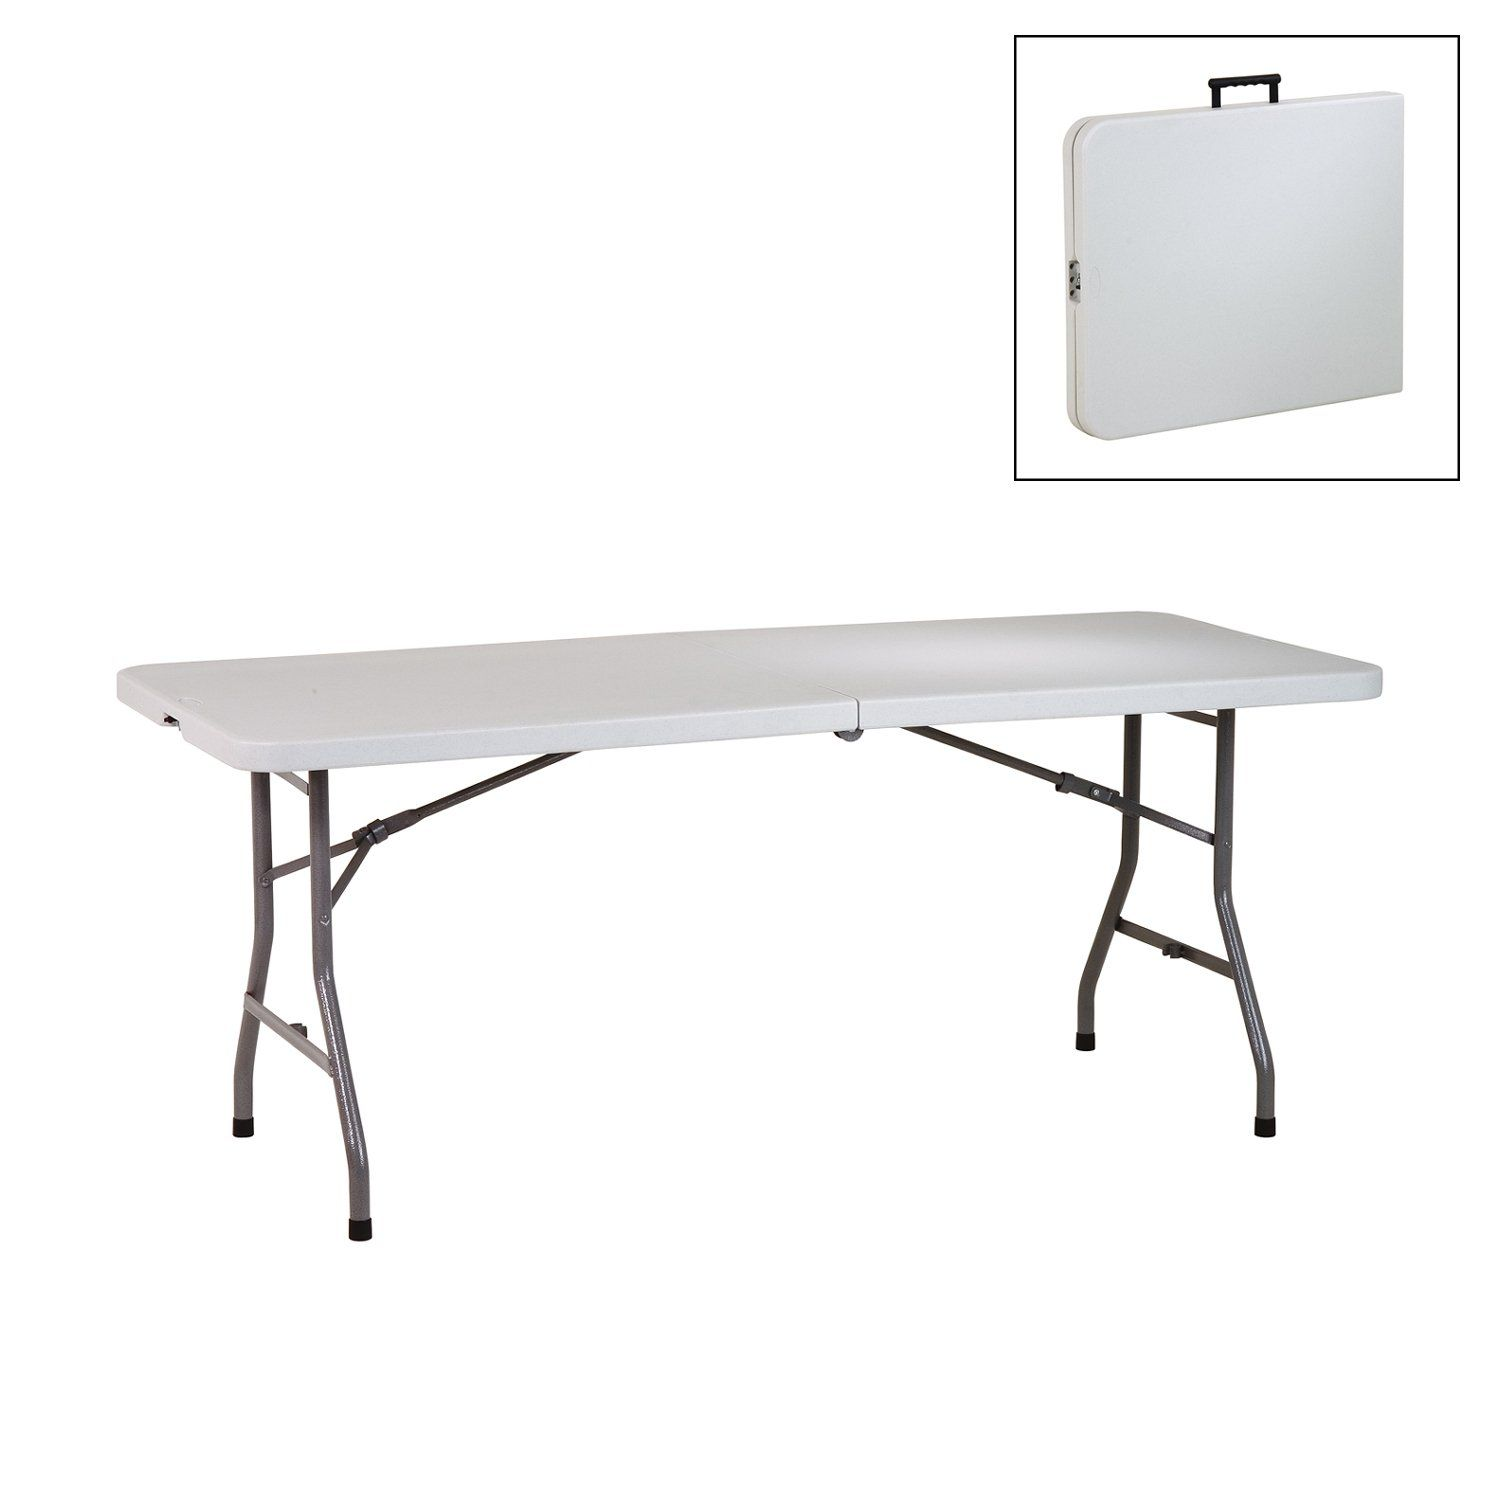 Http://www.lowes.ca/folding Tables/office